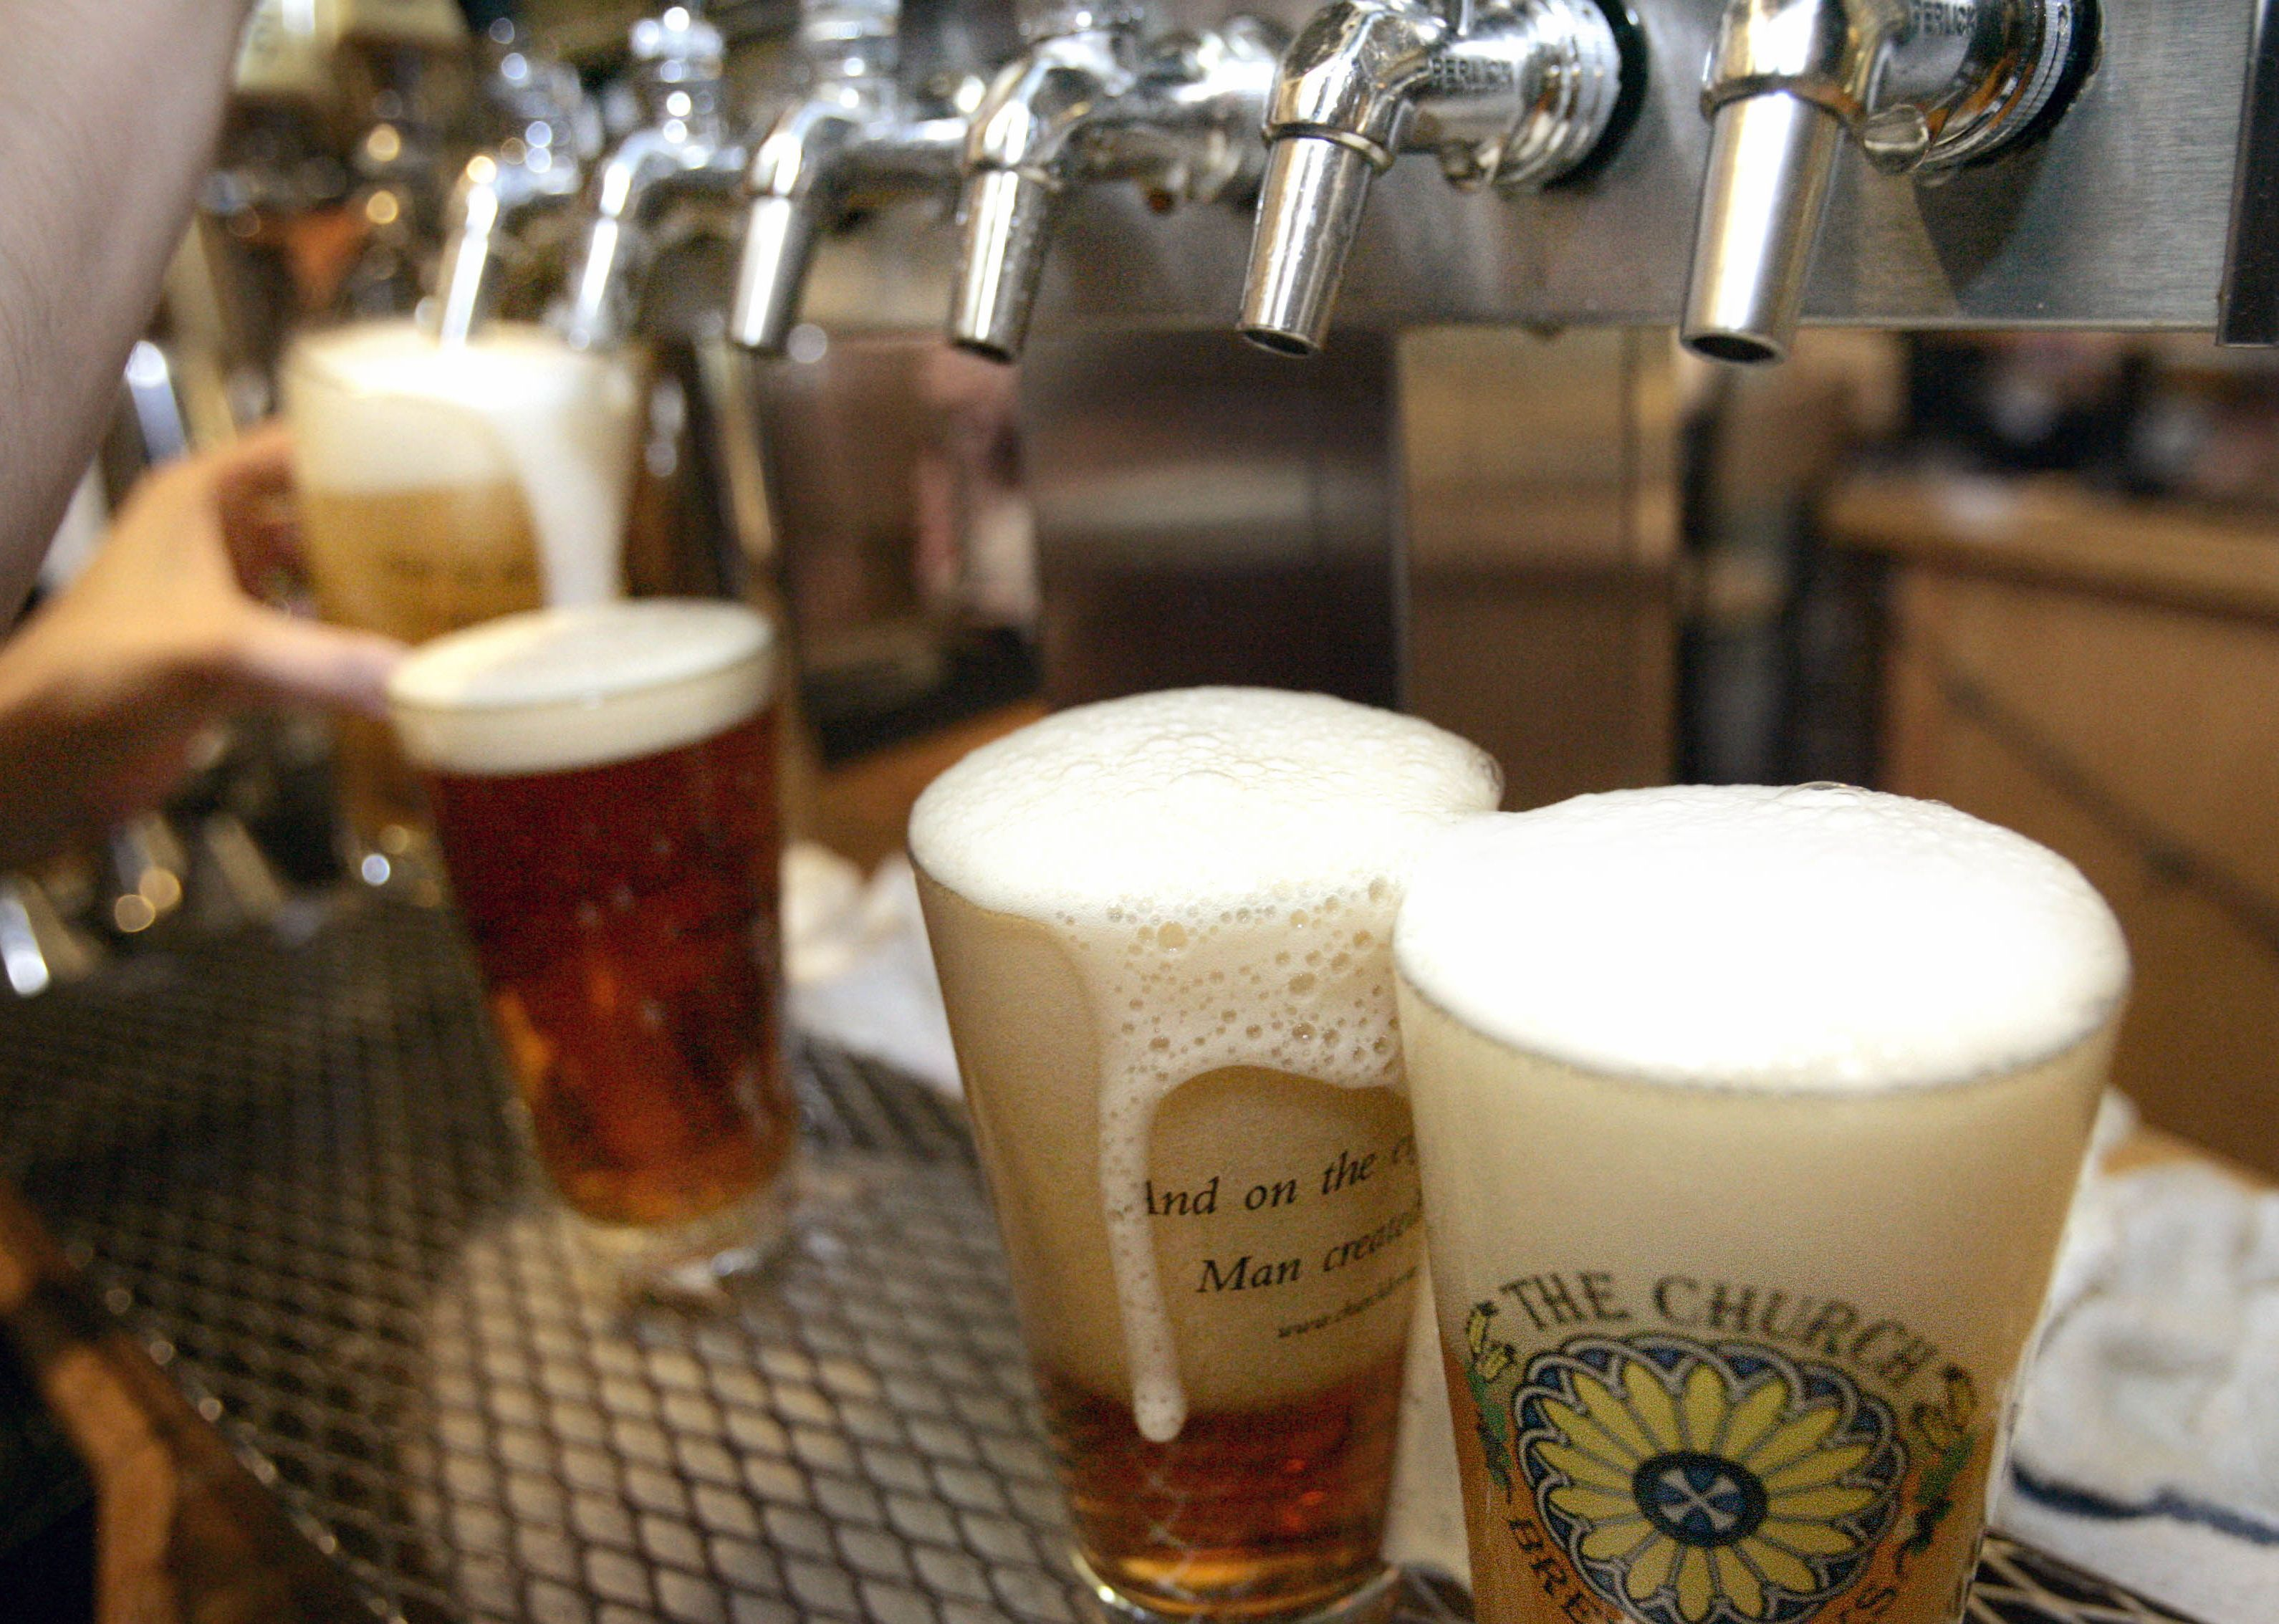 36+ Largest craft breweries in canada information